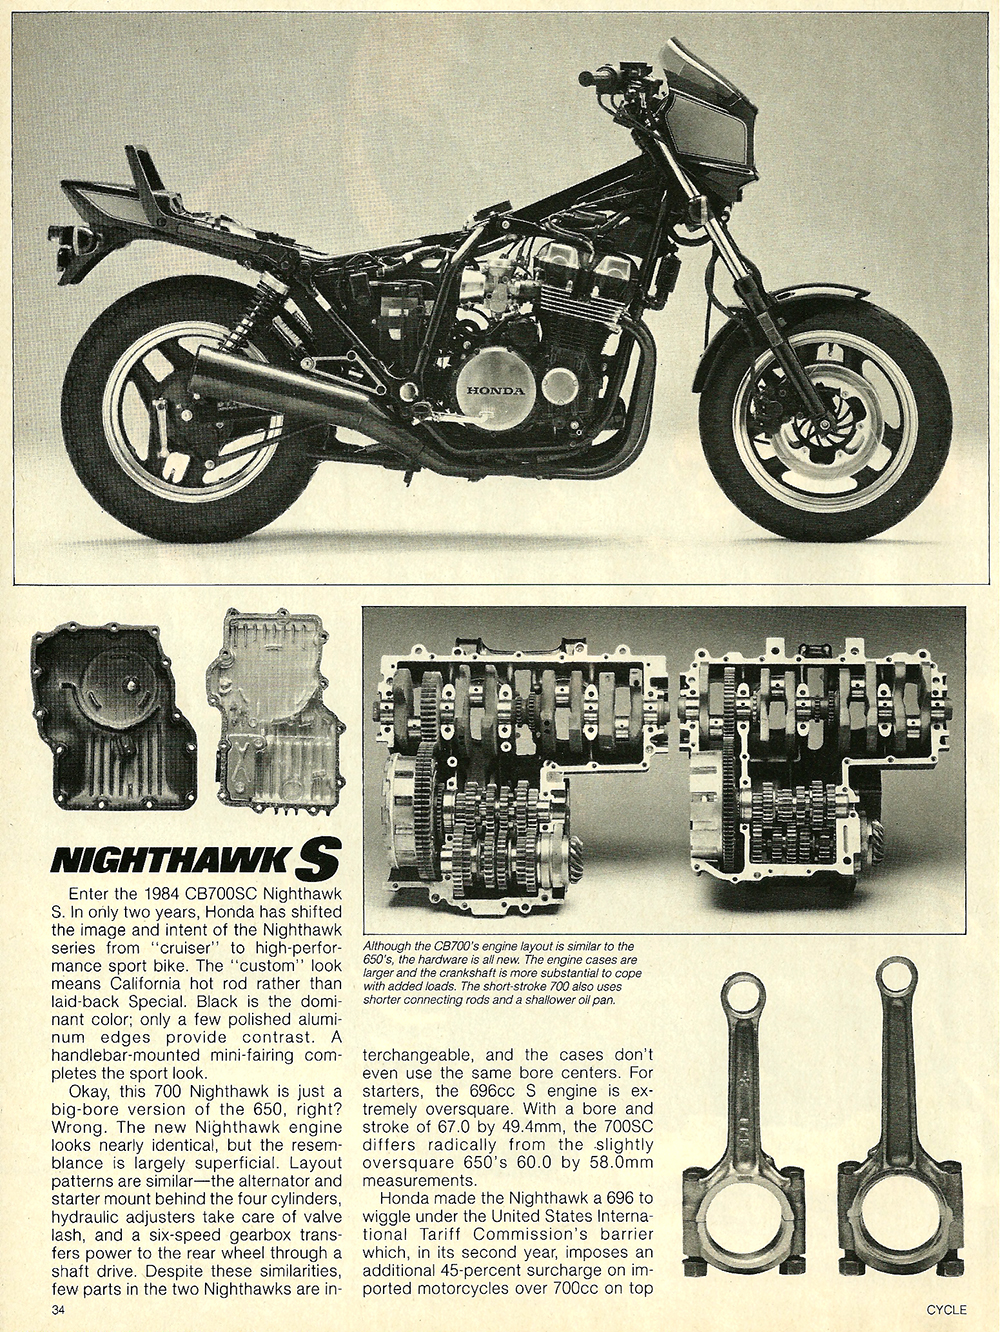 1984 Honda CB700SC Nighthawk S road test 3.jpg